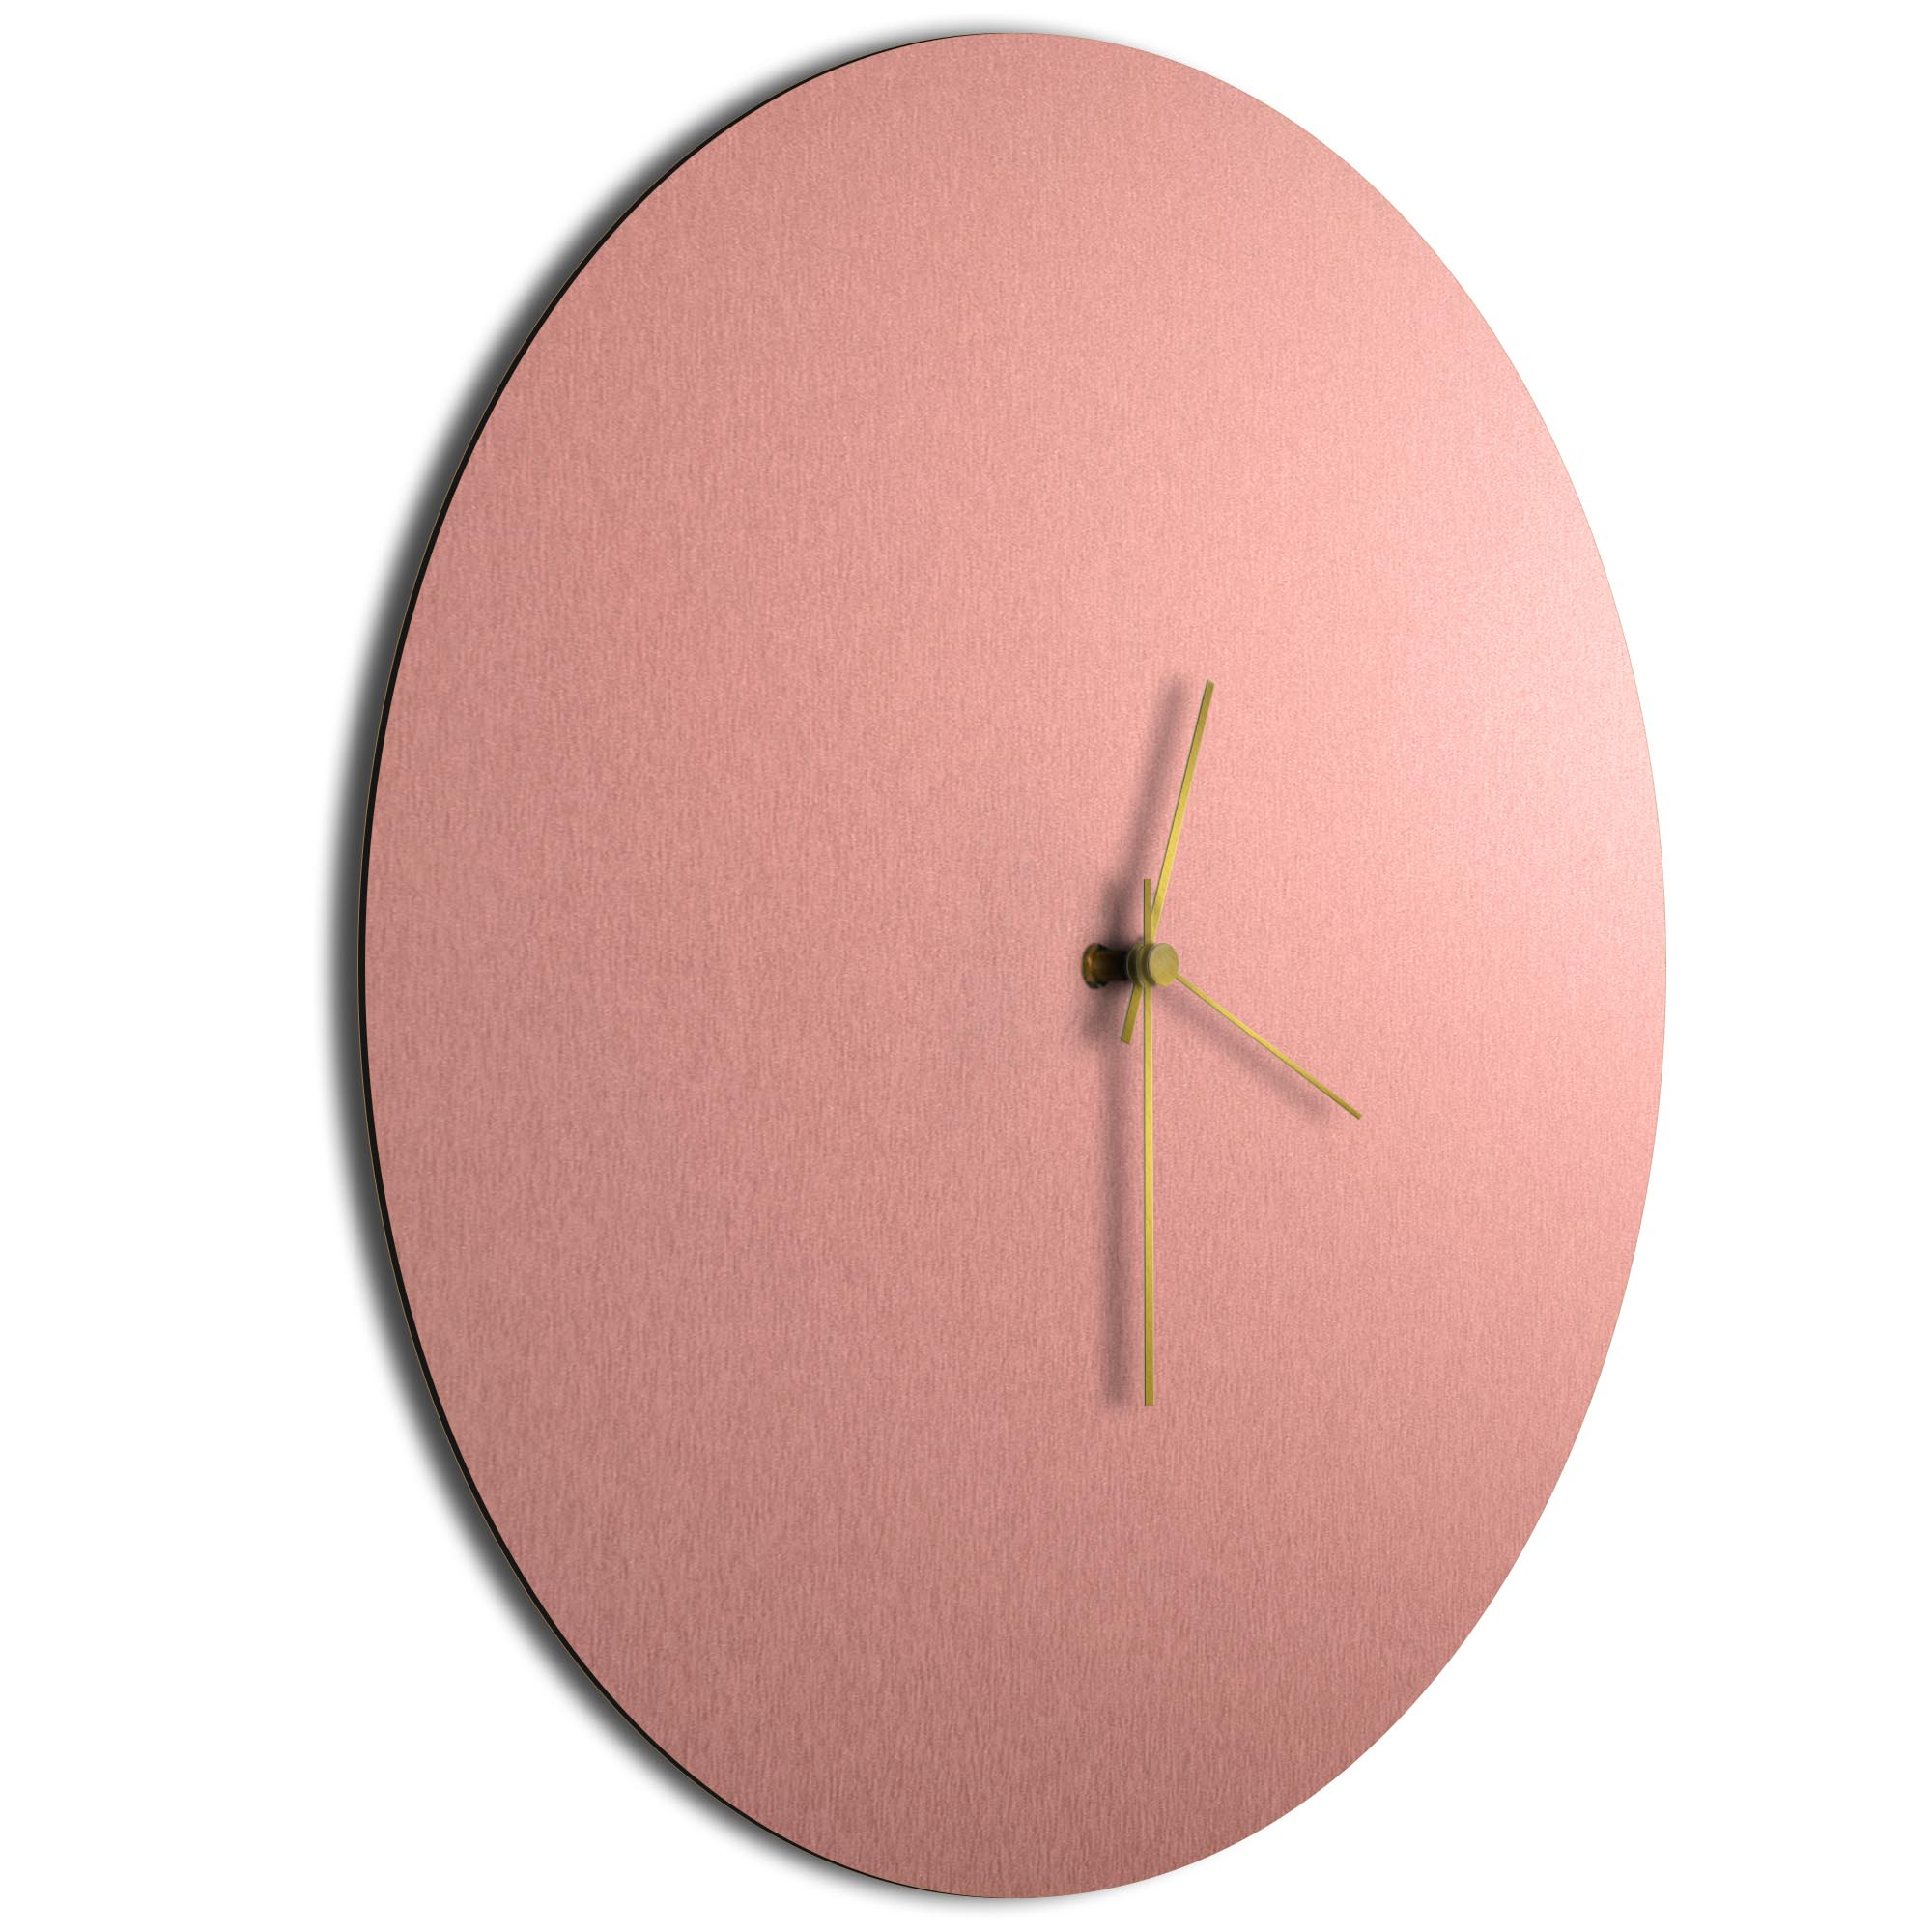 Coppersmith Circle Clock Gold - Image 2